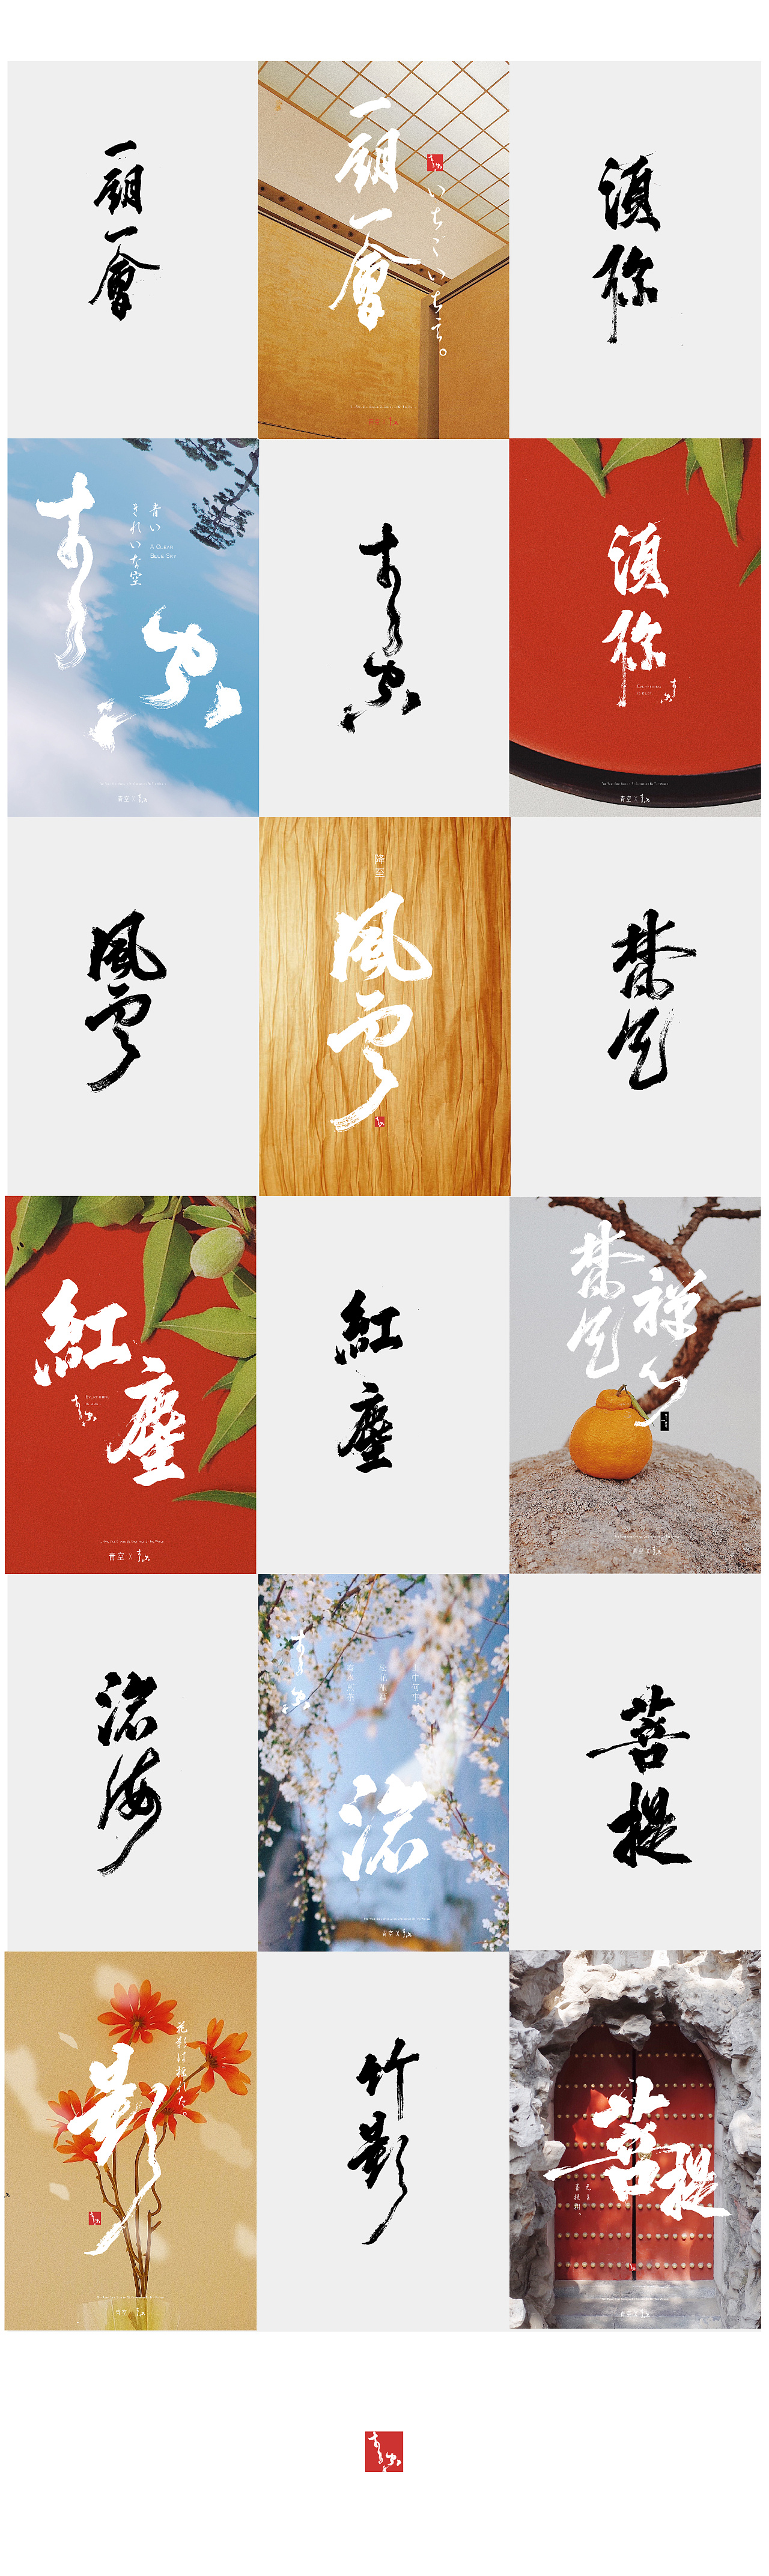 6P Chinese traditional calligraphy brush calligraphy font style appreciation #.1517